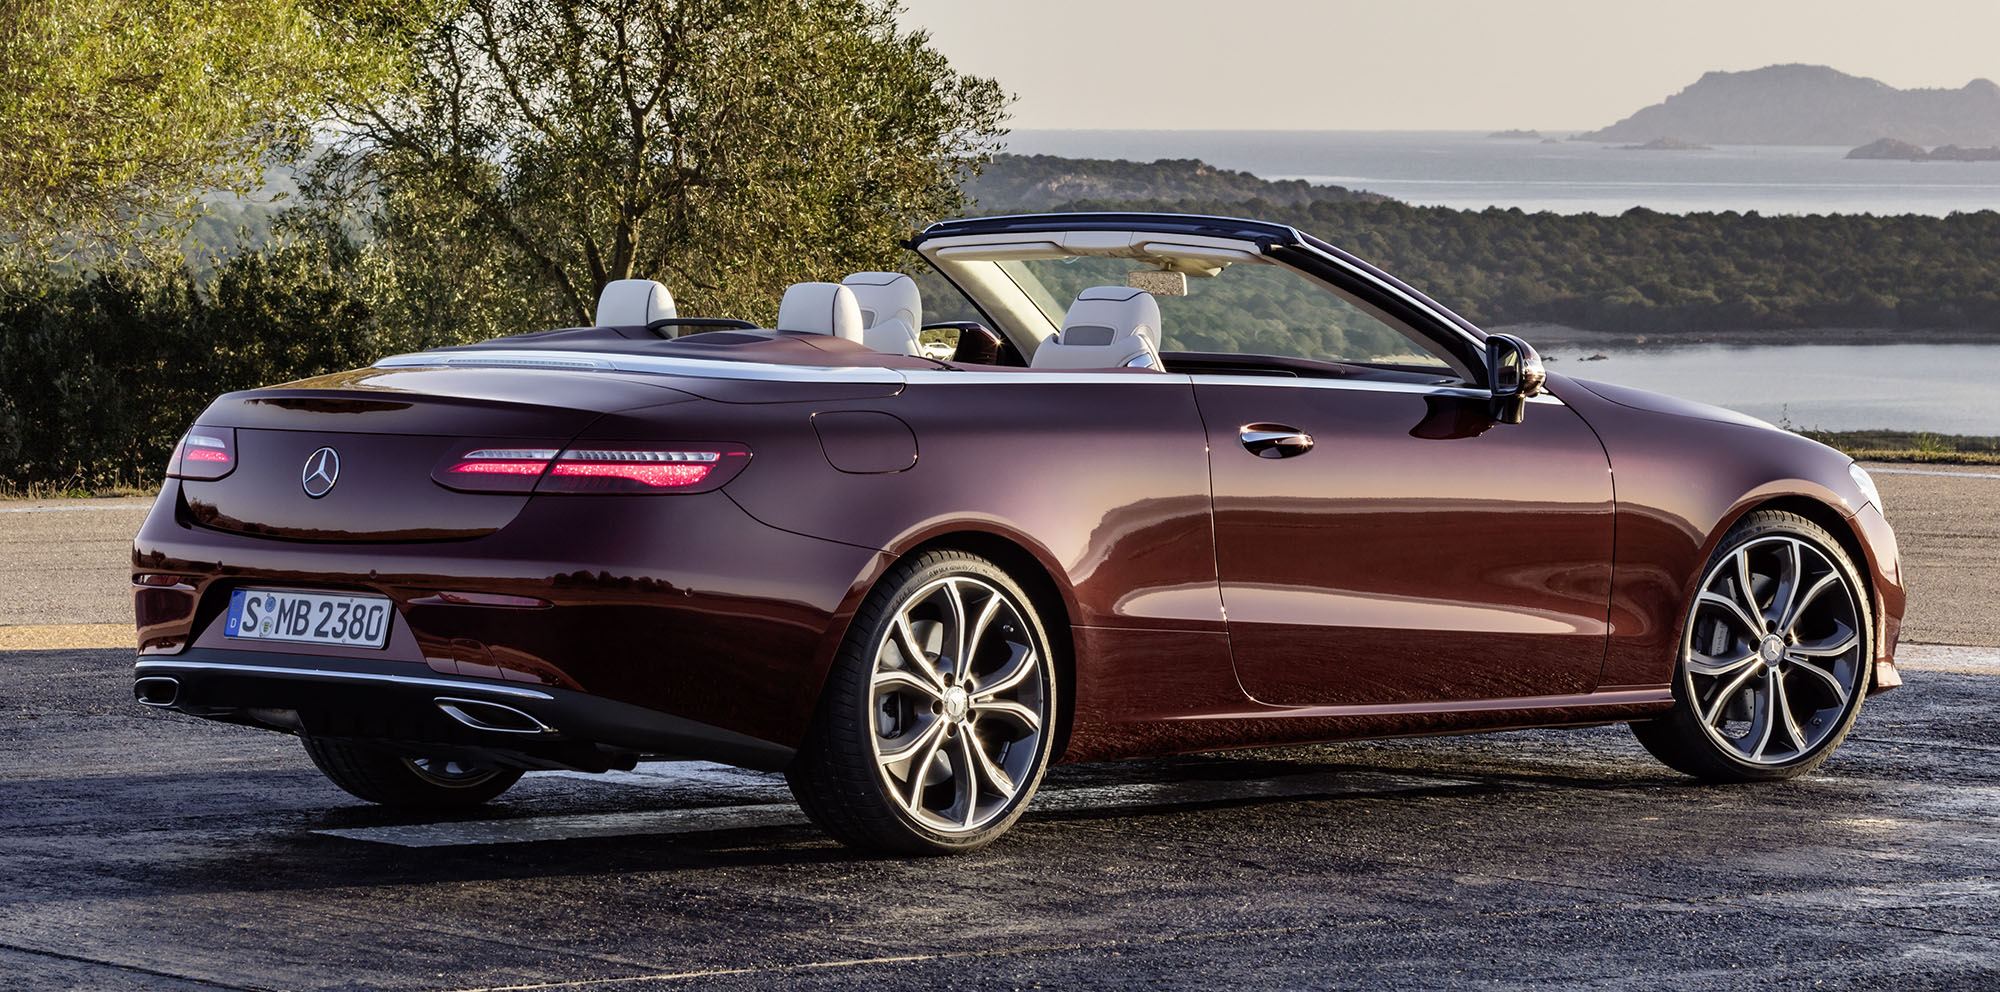 2017 Mercedes Benz E Class Cabriolet Revealed Photos